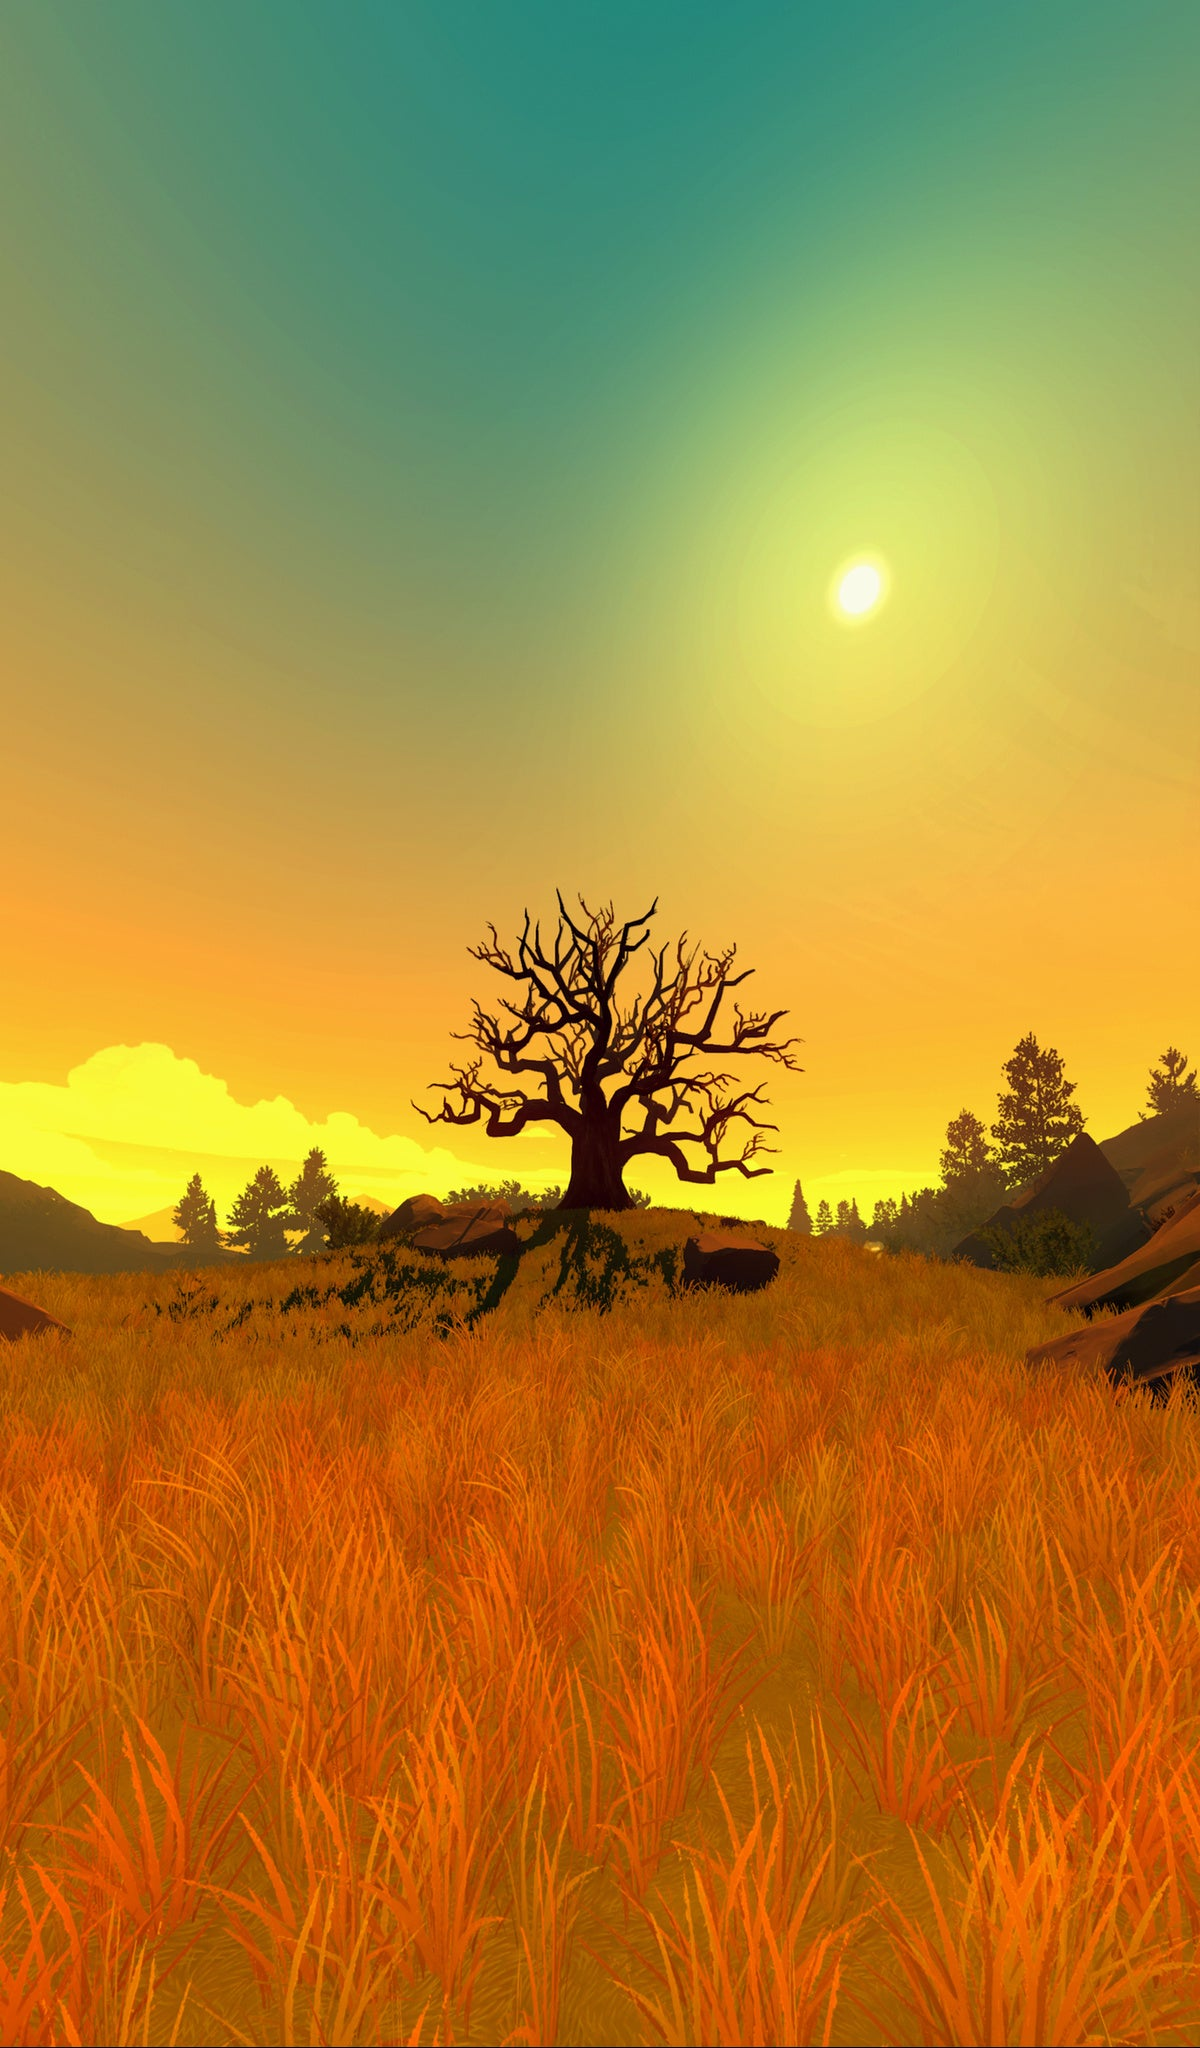 Firewatch Has Your Wallpaper Needs Covered For 2016